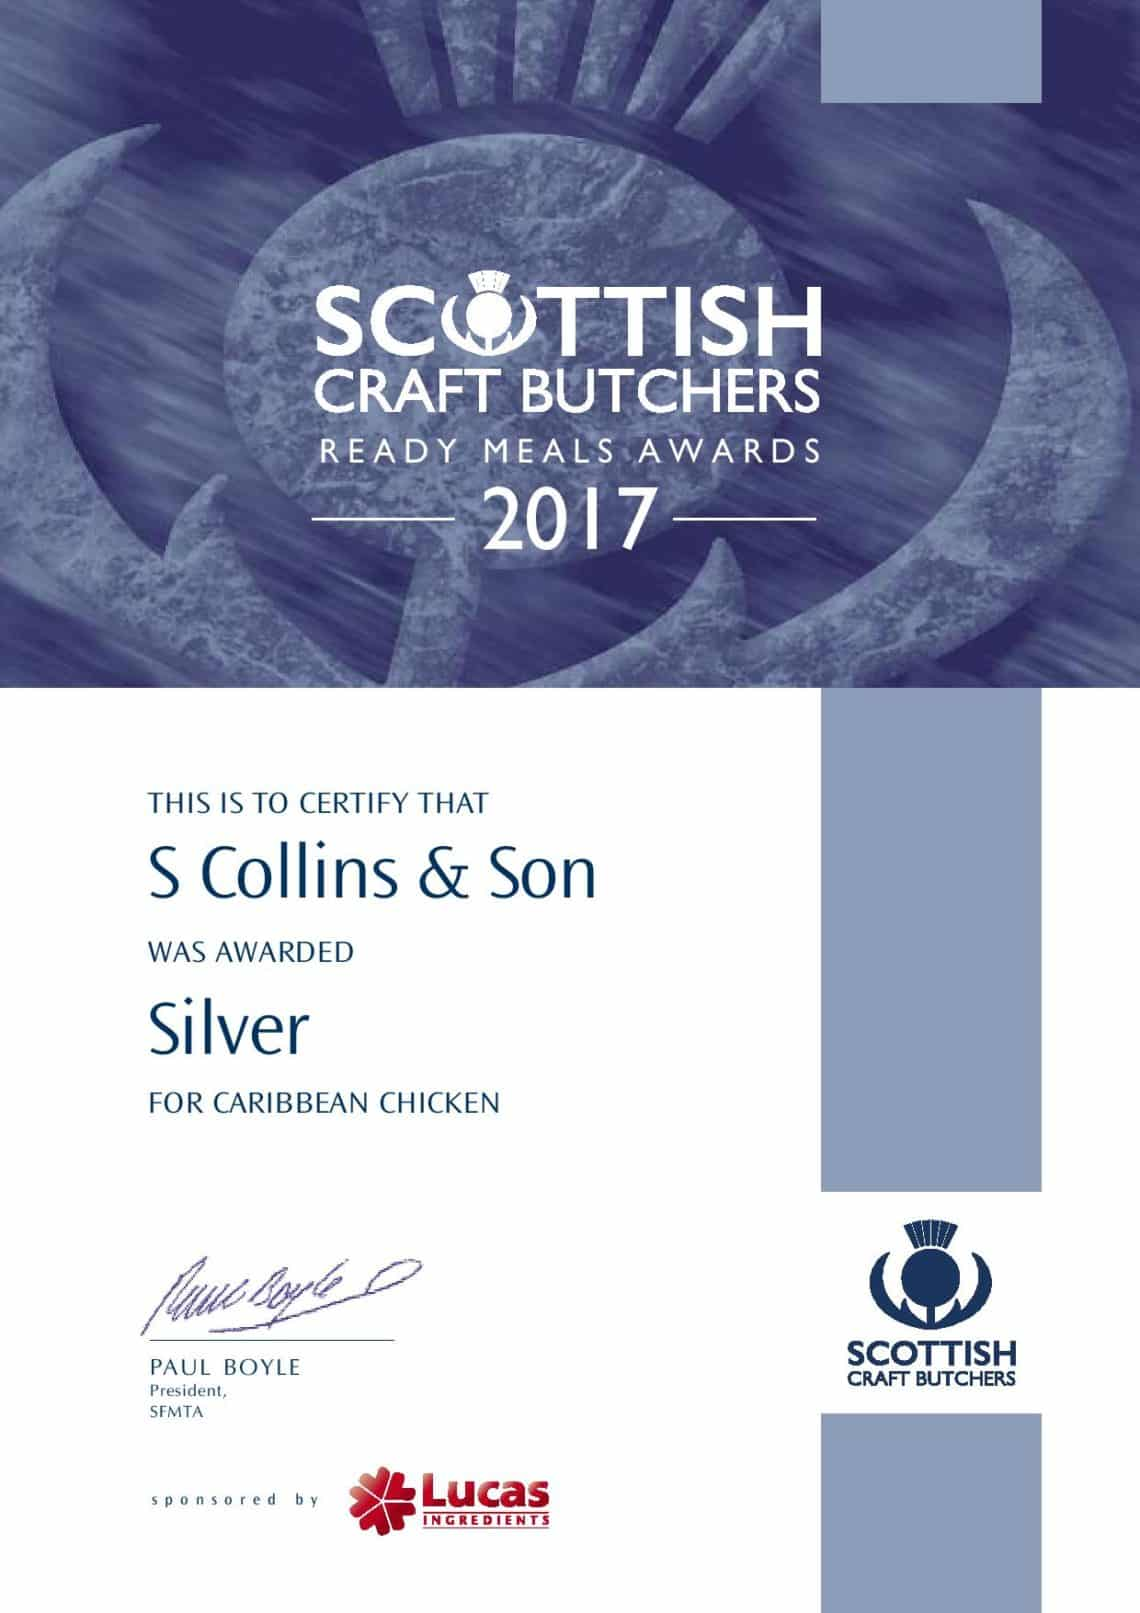 Caribbean Chicken: Ready Meal Award 2017